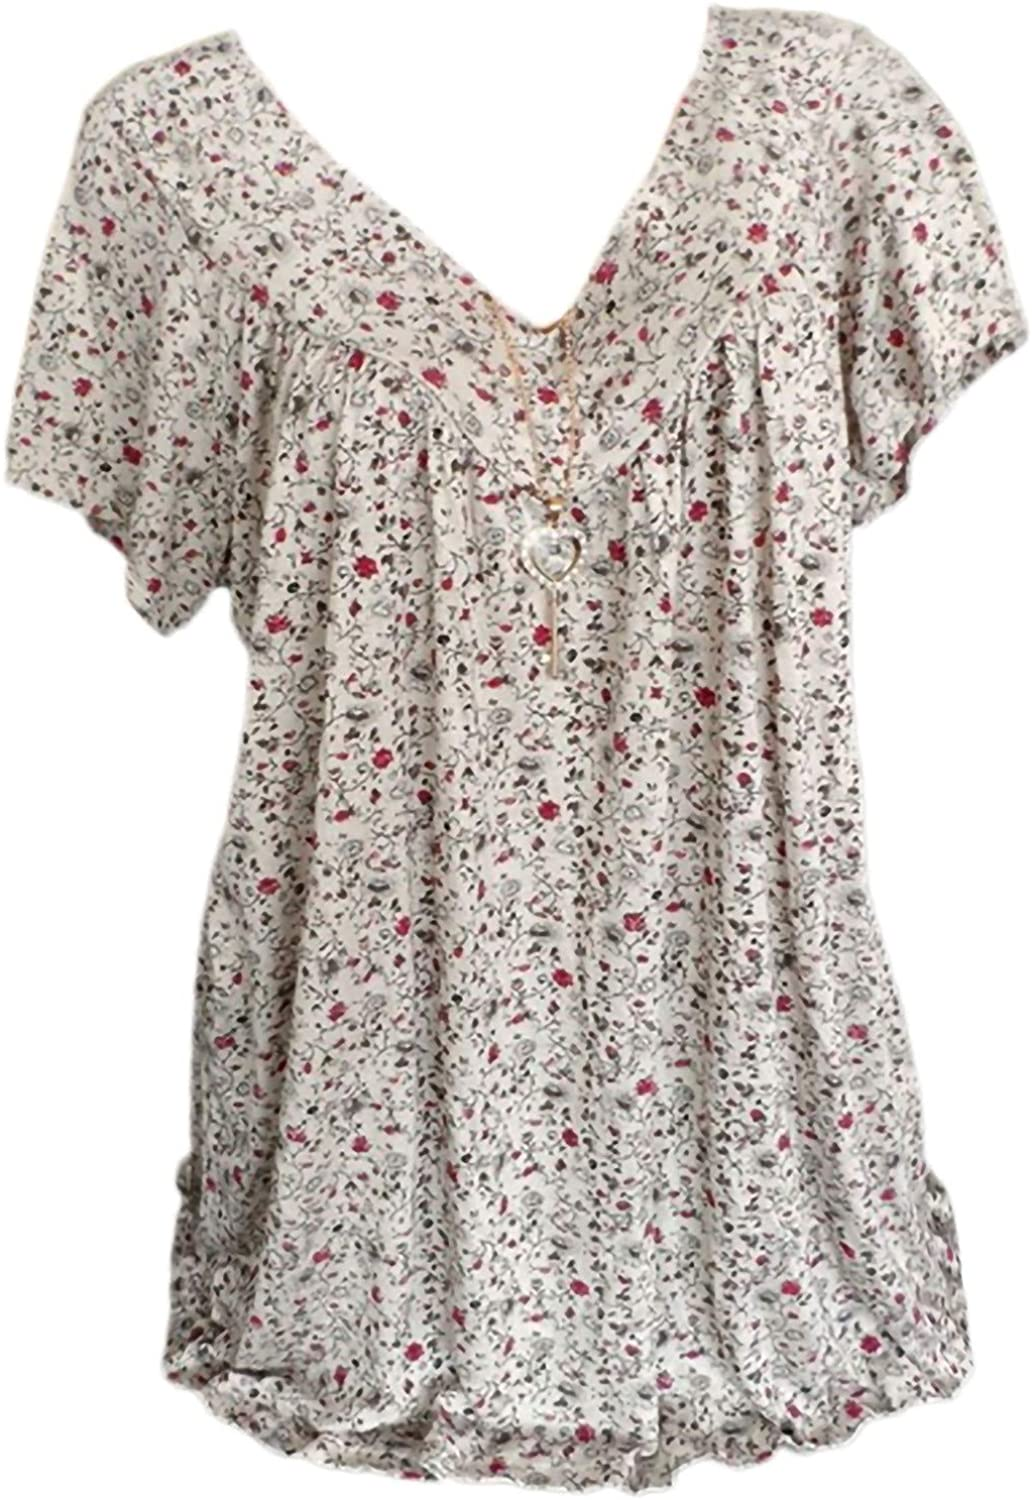 Womens Short Sleeve Tops Elegant Floral Print Blouse Lightweight Comfy Shirts Plus Size Breathable Tunic